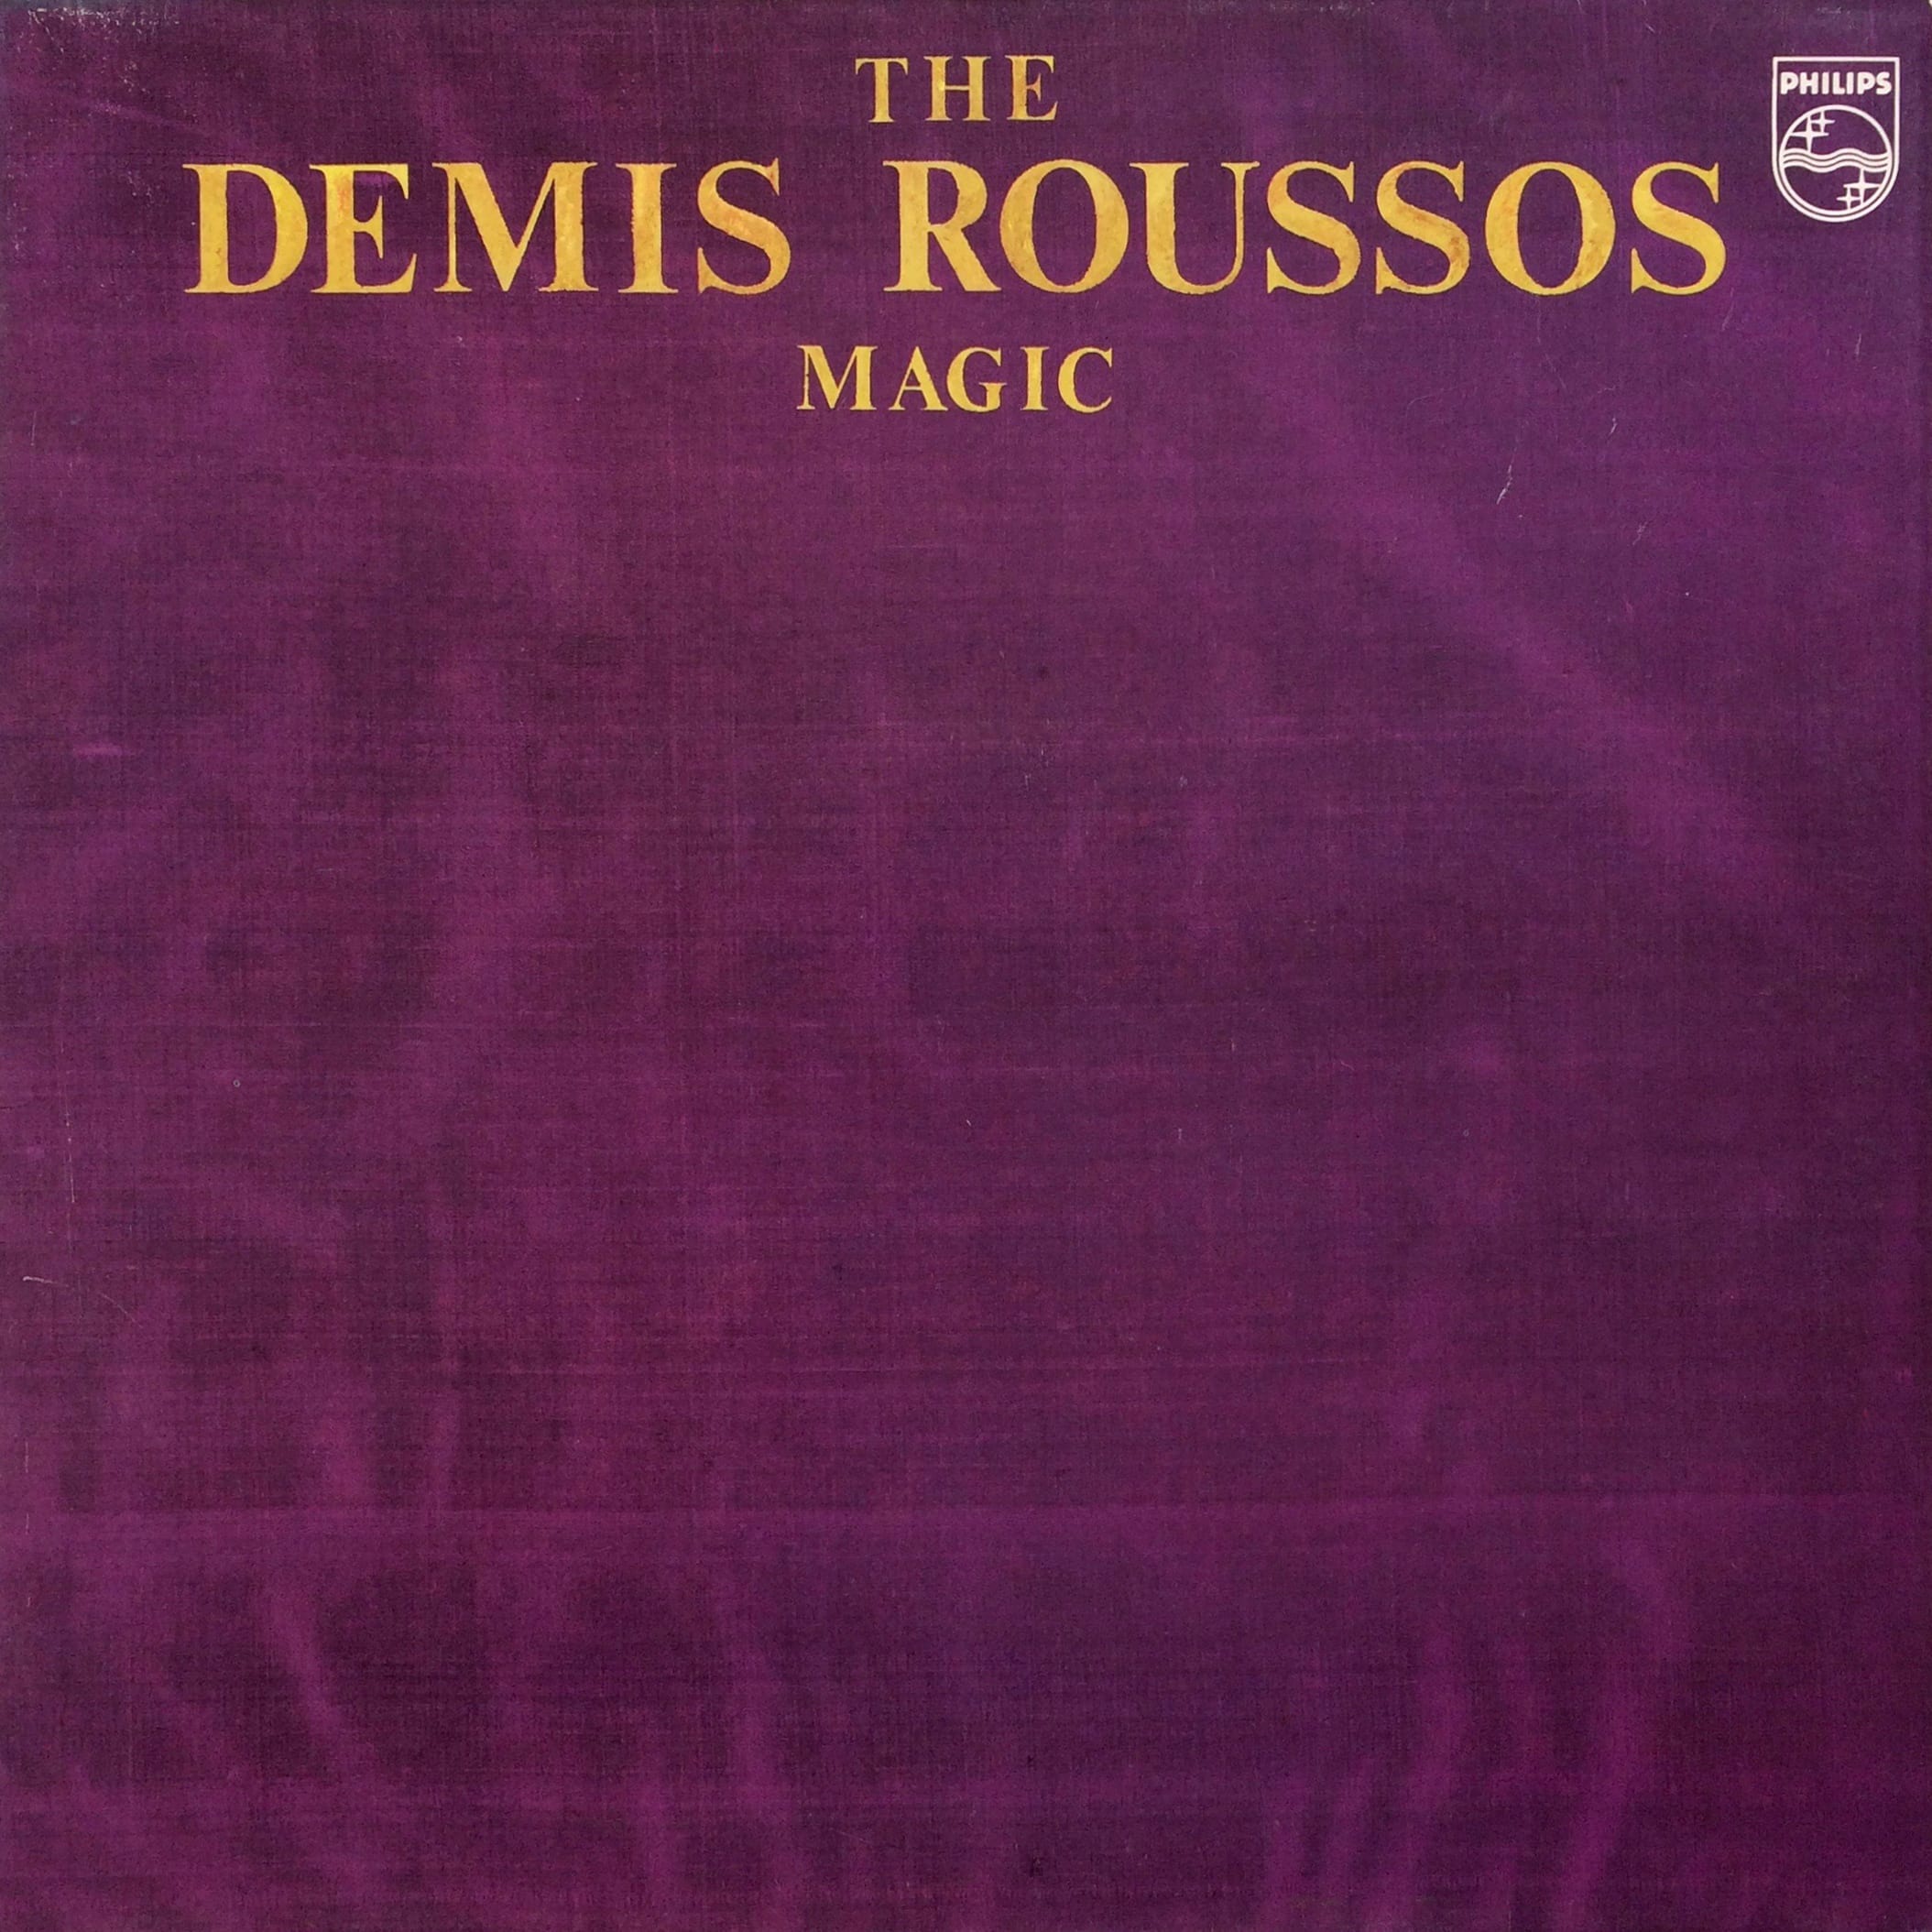 Demis Roussos ‎– The Demis Roussos Magic